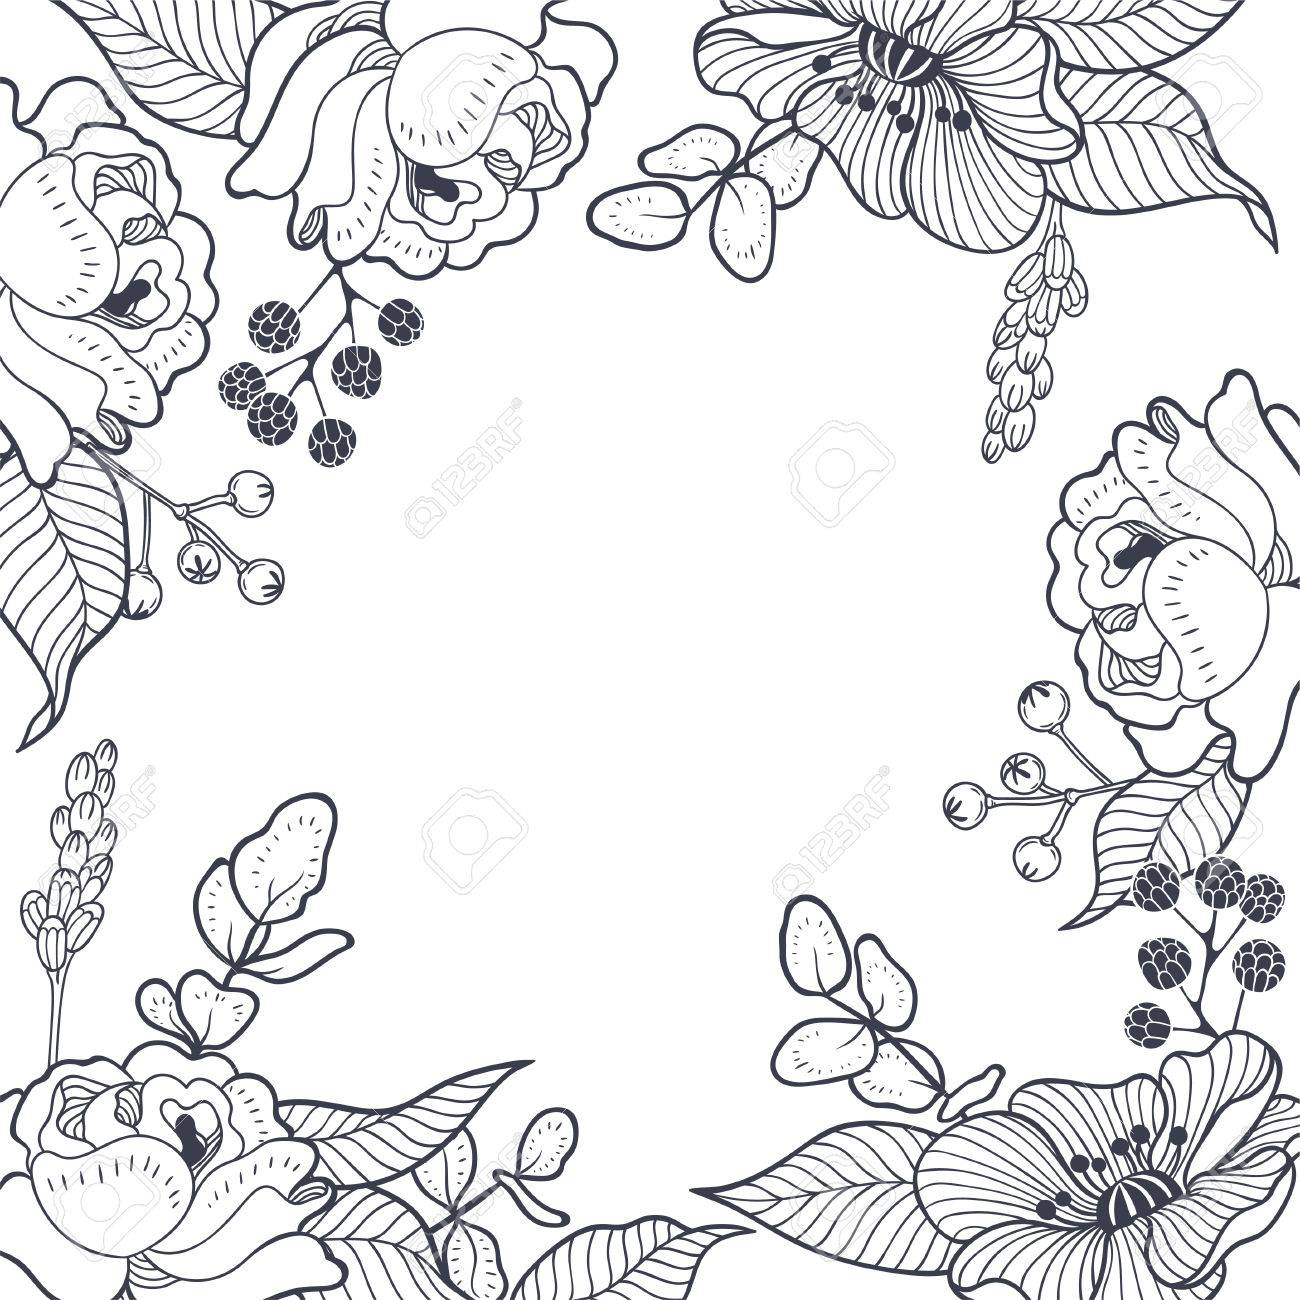 Vintage Floral Graphic Background Vector Hand Drawn Botanical